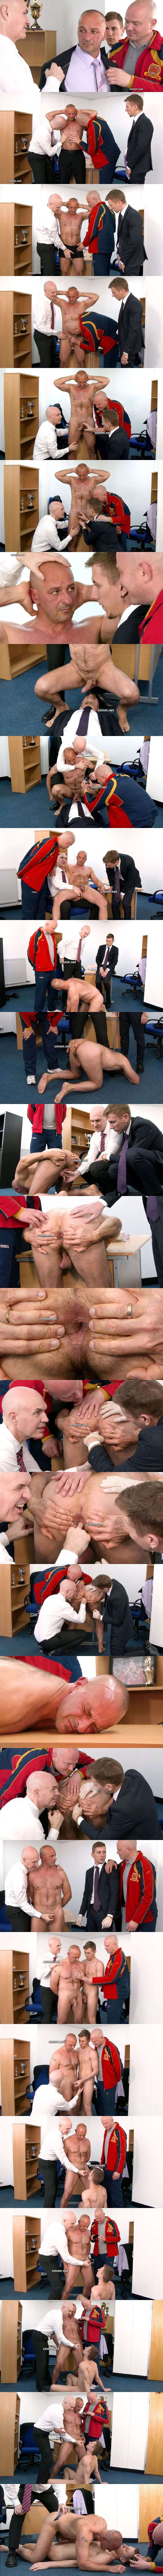 Maculine businessman Dino (aka Monsieur Francois) stripped, fingered, humiliated and jerked off in front of his nephew Paolo in The Offer That Cant Be Refused at Cmnm 01